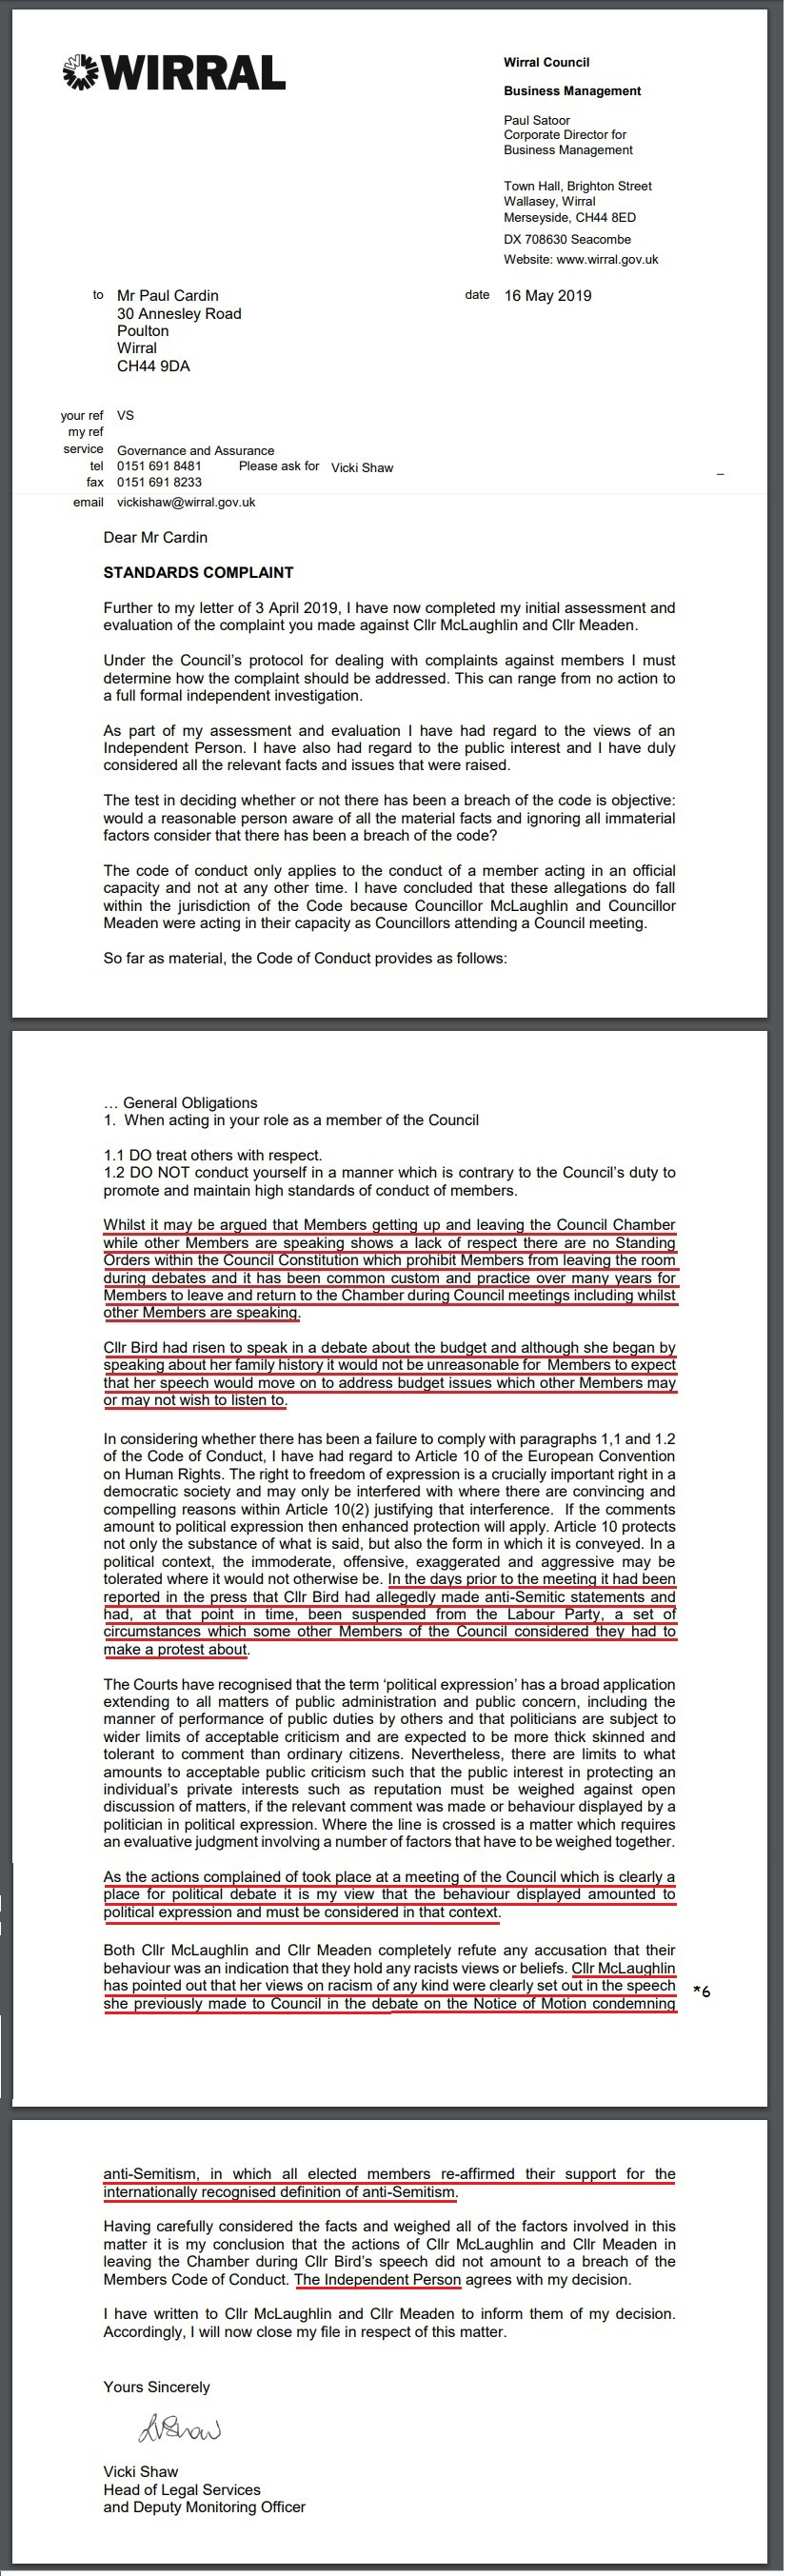 antisemitism standards complaint vicki shaw wirral council 16th May 2019 decision2